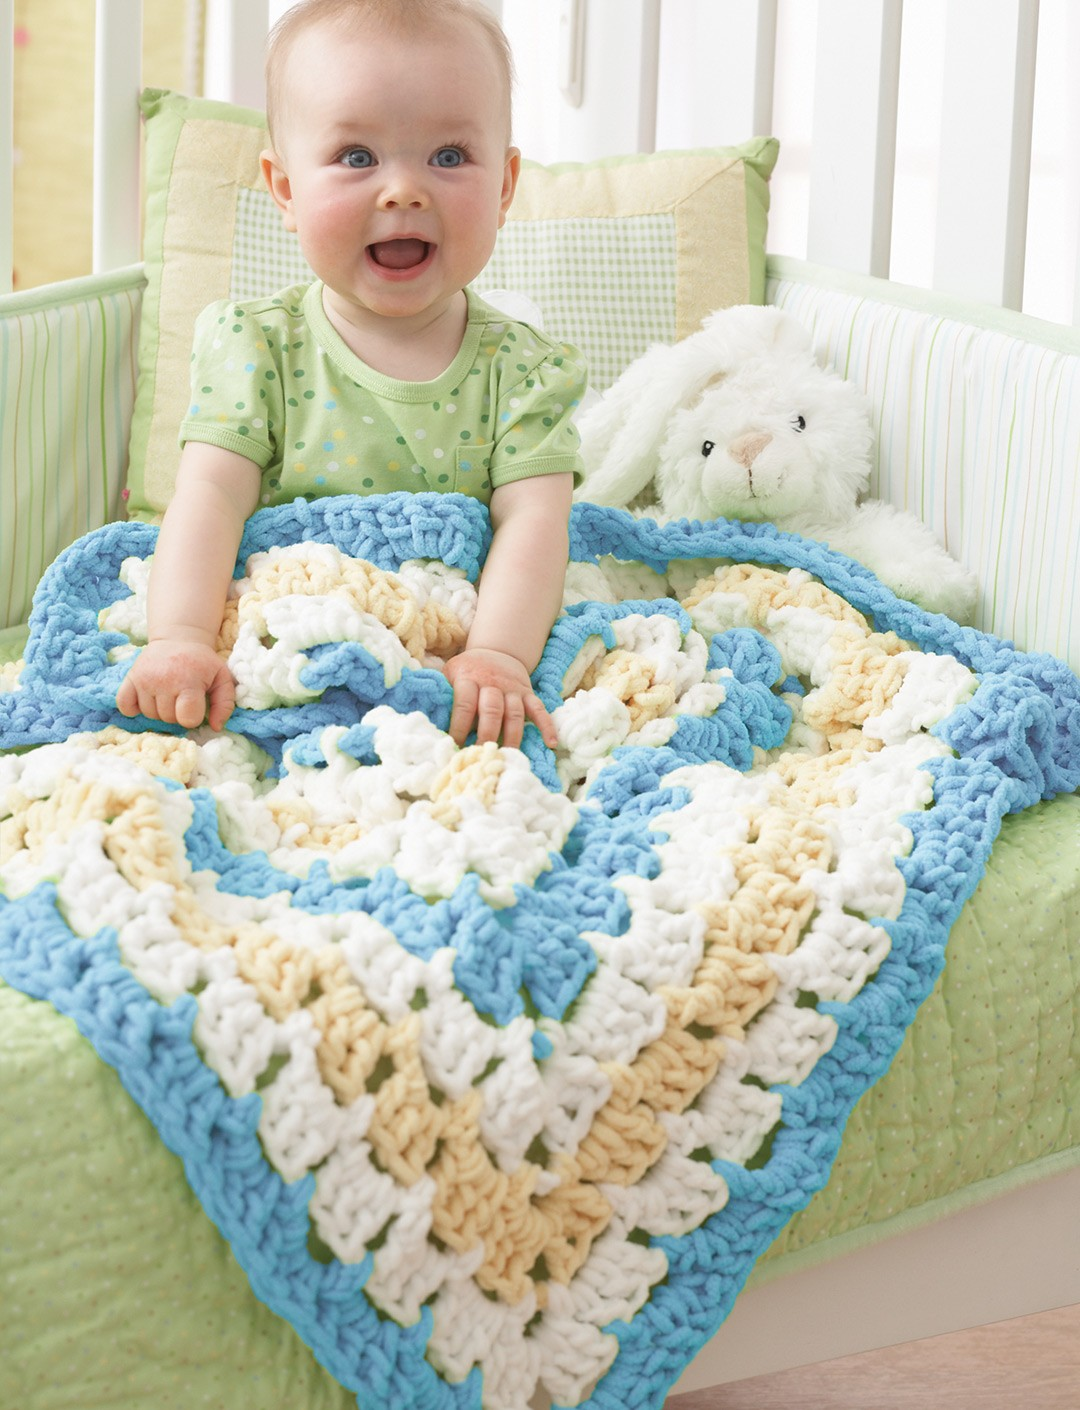 Bernat Baby Blanket Knitting Patterns : Bernat From the Middle Baby Blanket, Crochet Pattern Yarnspirations